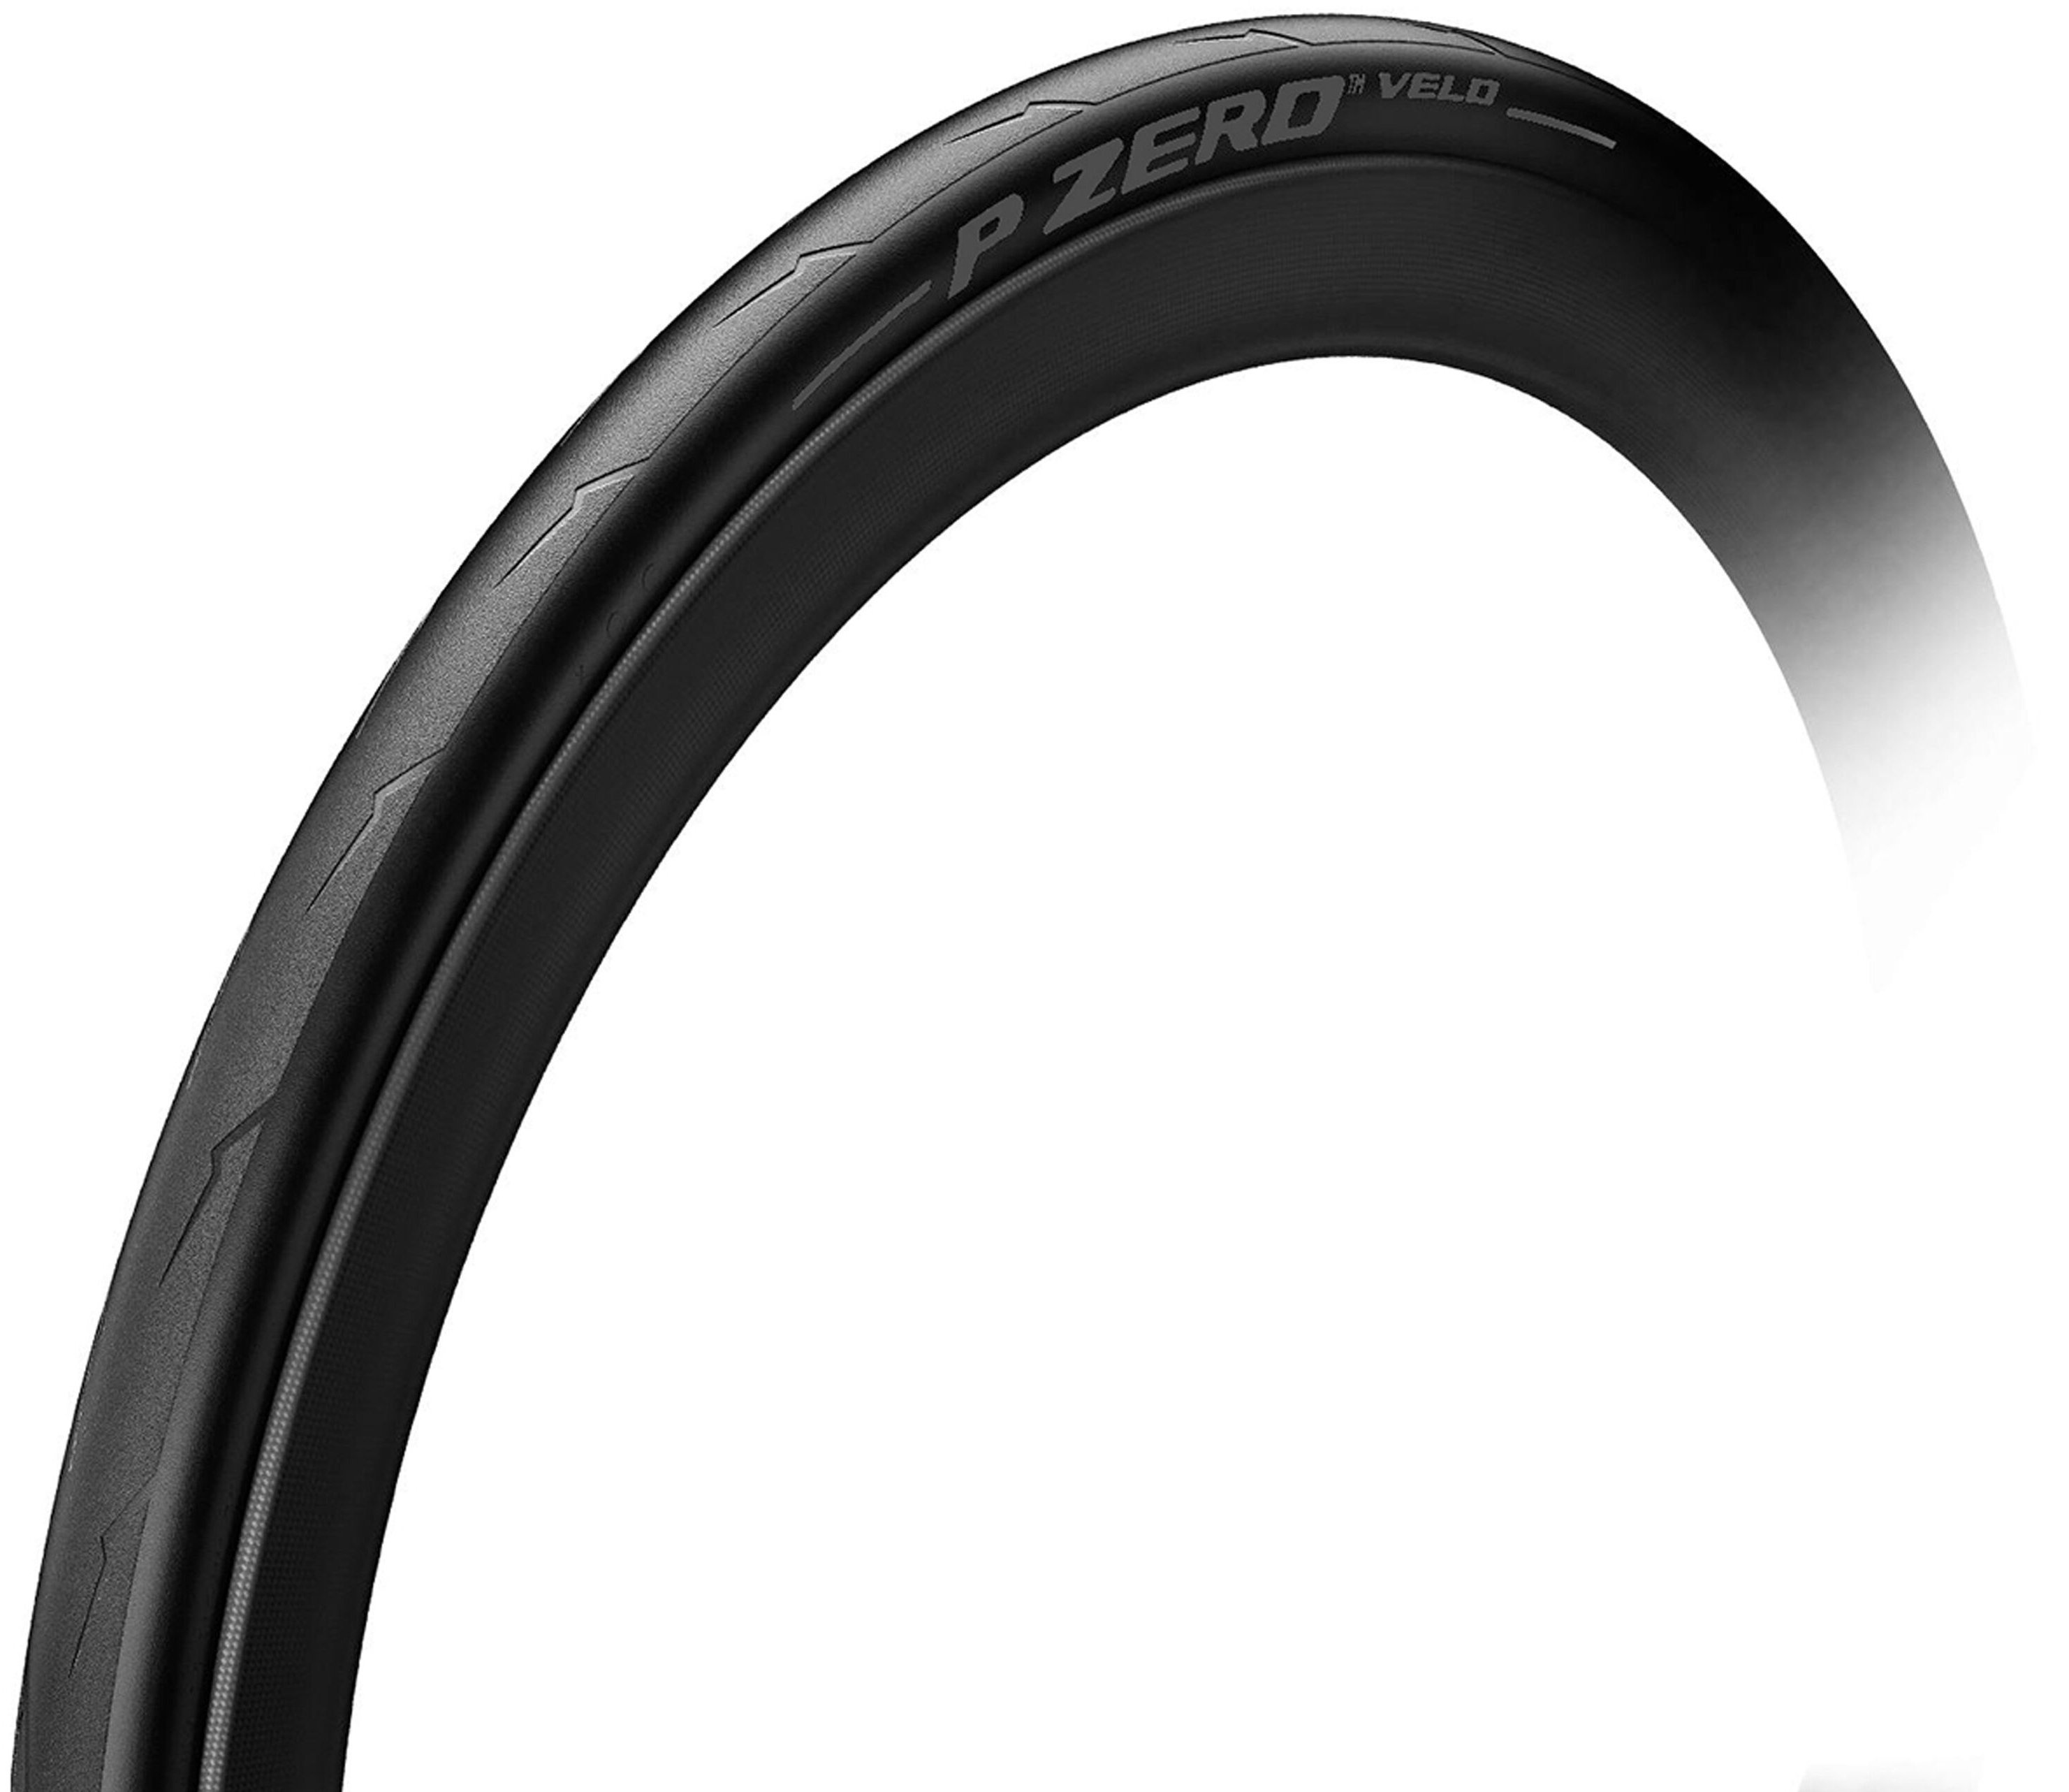 Pirelli P Zero Velo Pure Performance Color Edition 700x25c Foldedæk - Stealth